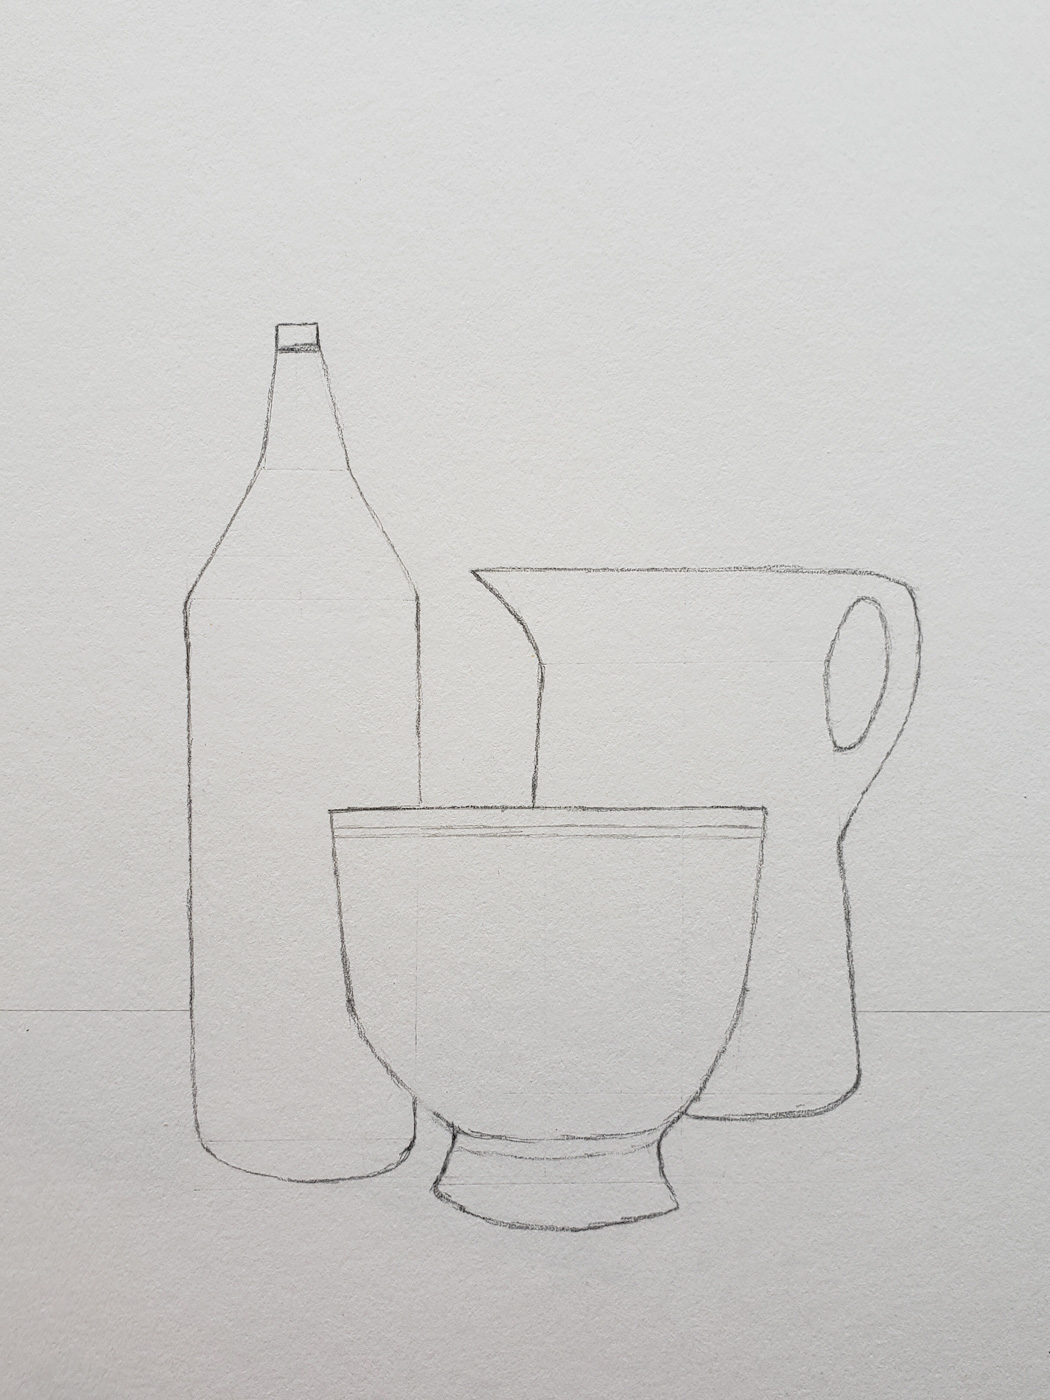 Bottle, Cup, and Vase